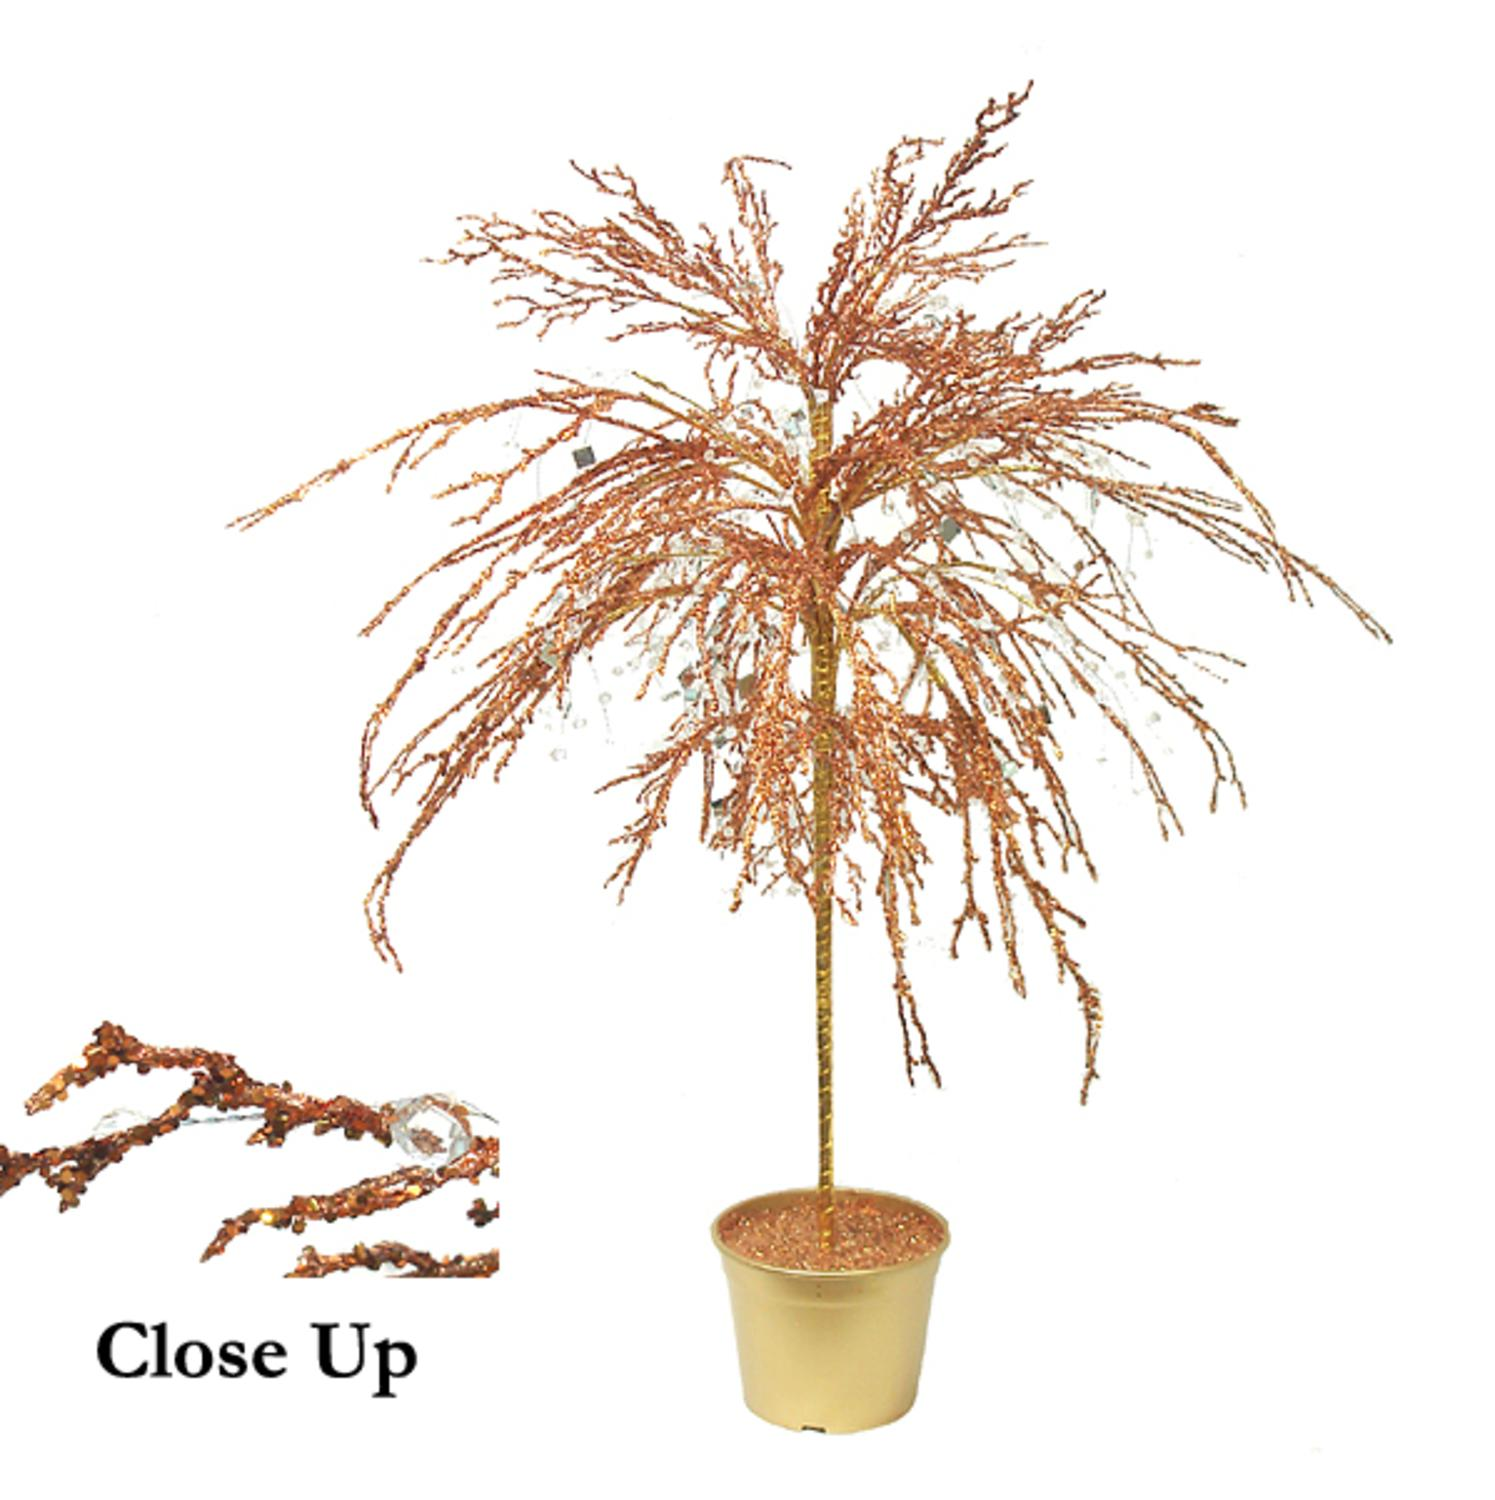 CMI 3.75' Unlit Artificial Christmas Tree Potted Copper Crystallized Glitter Mirrors and Beads